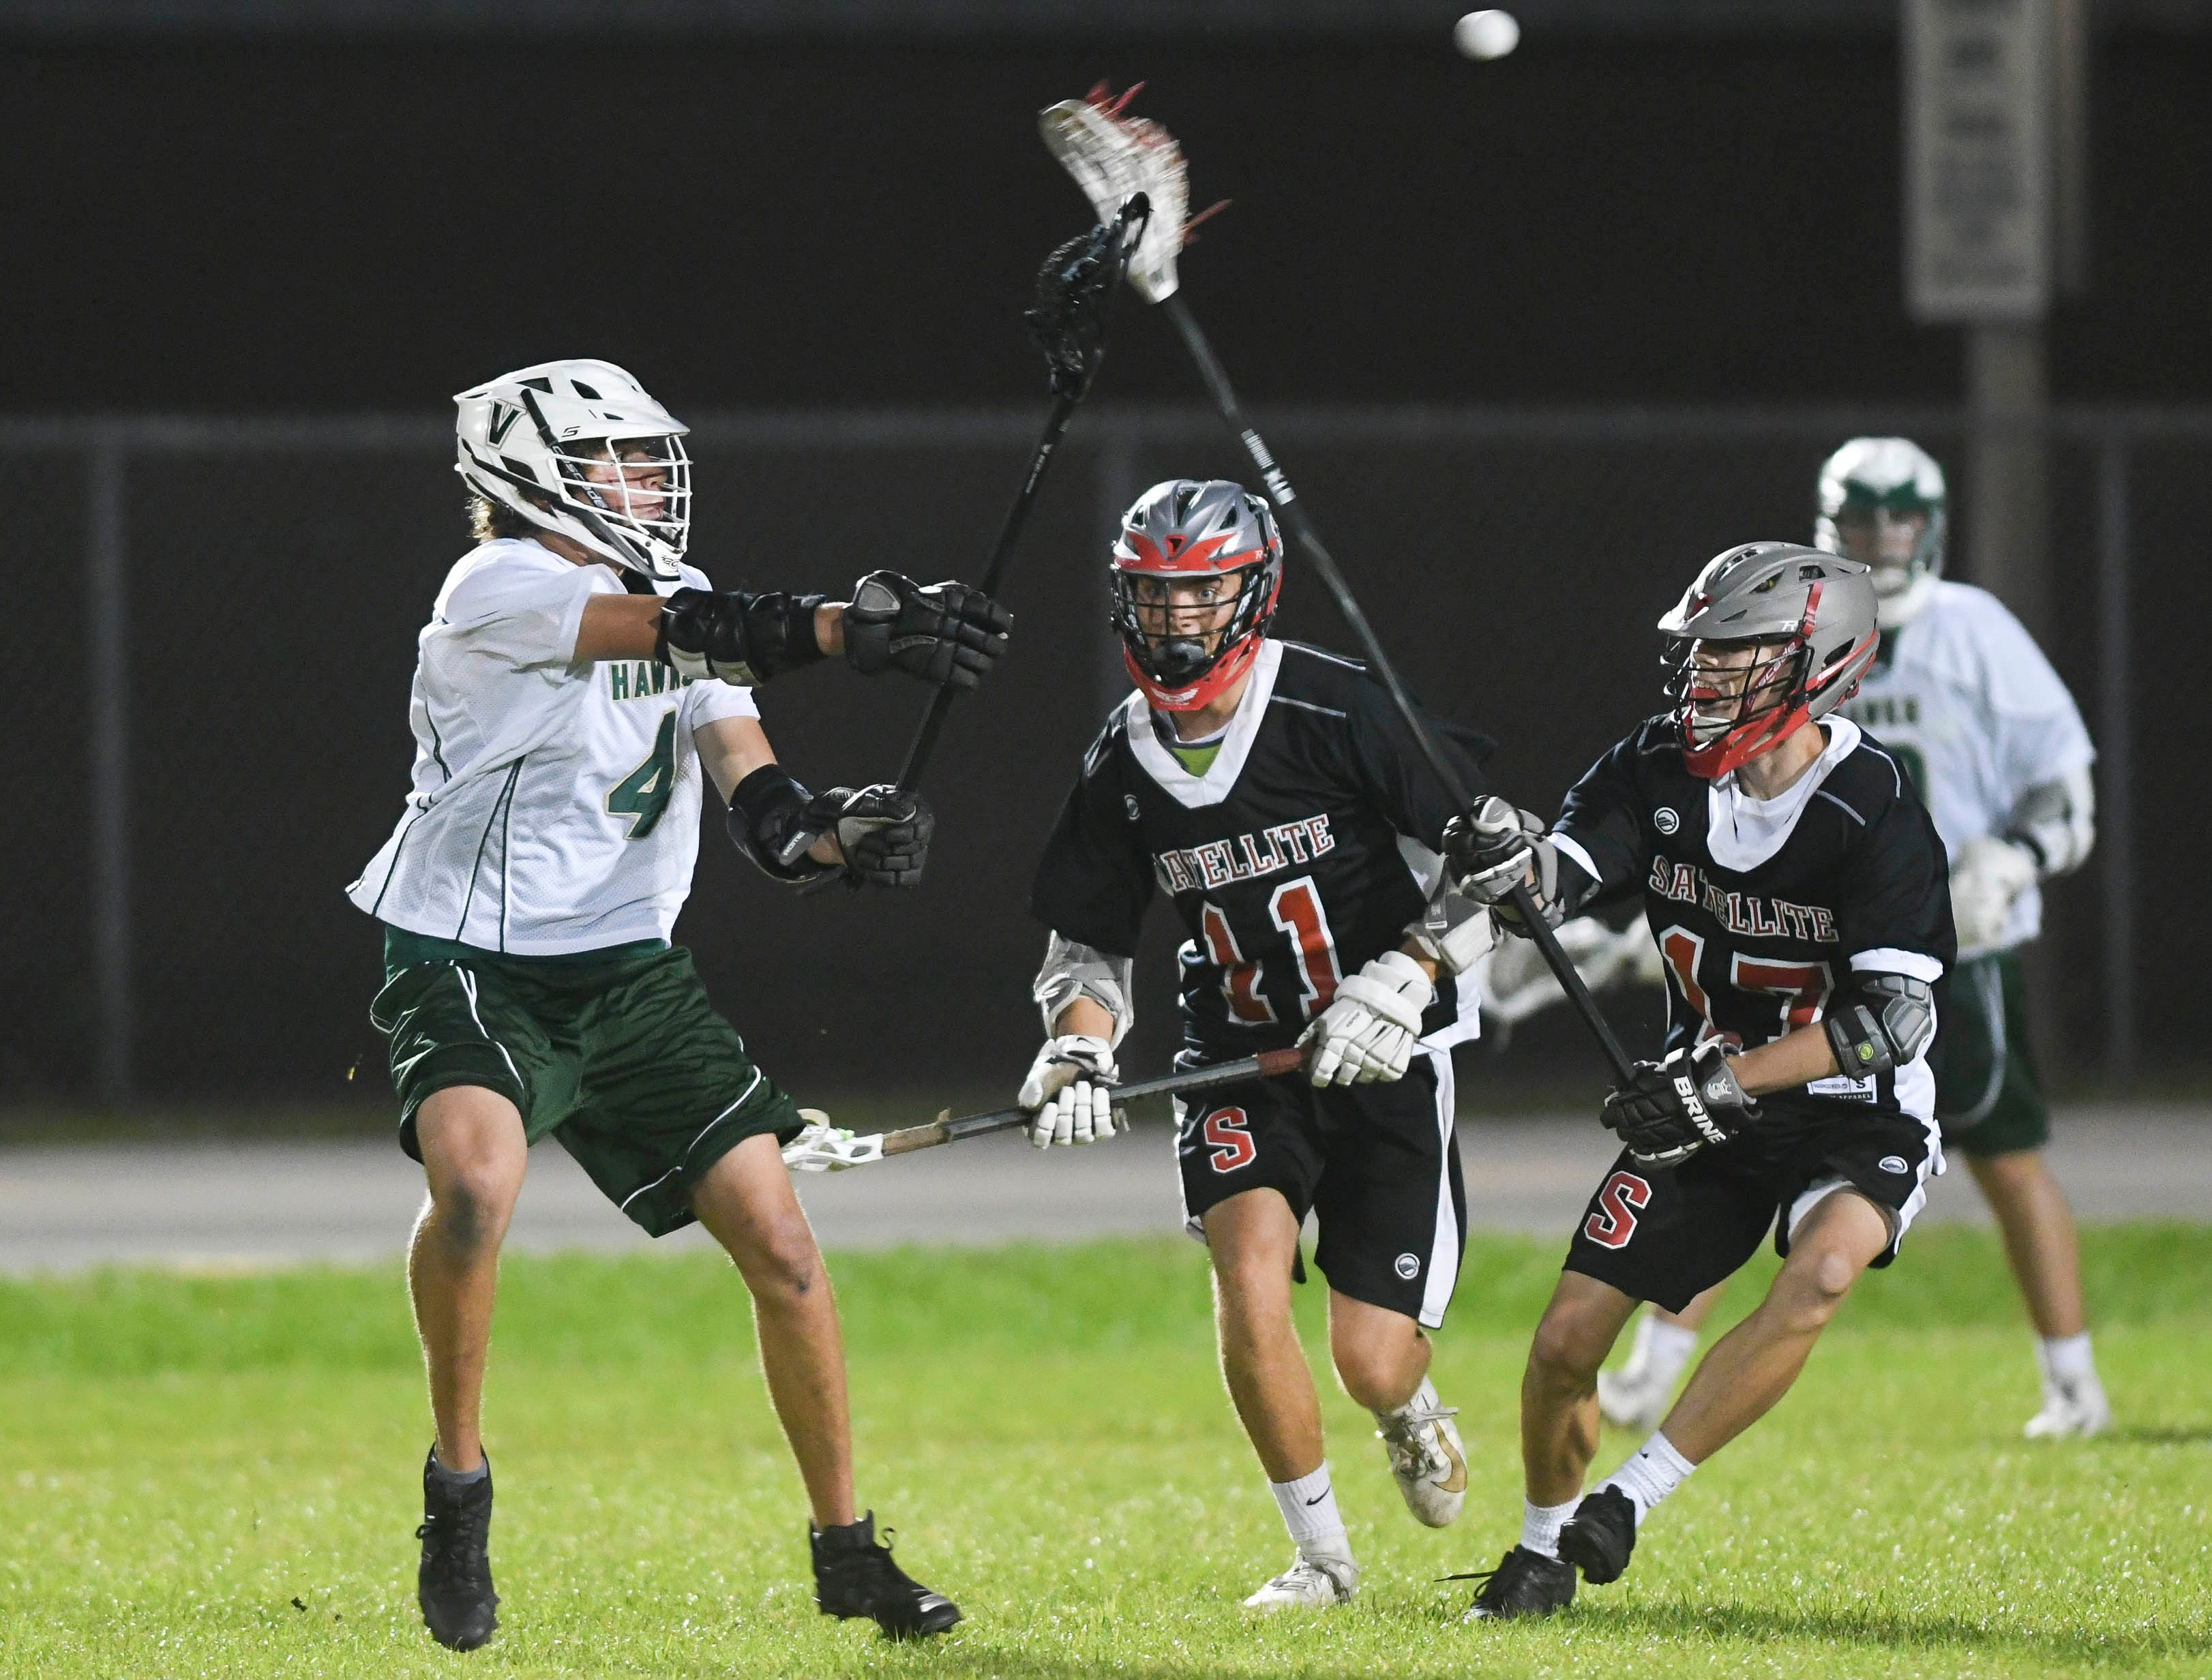 Gavin Wessell of Viera (4) passes away from a pair of Satellite defenders during Tuesday's game in Viera